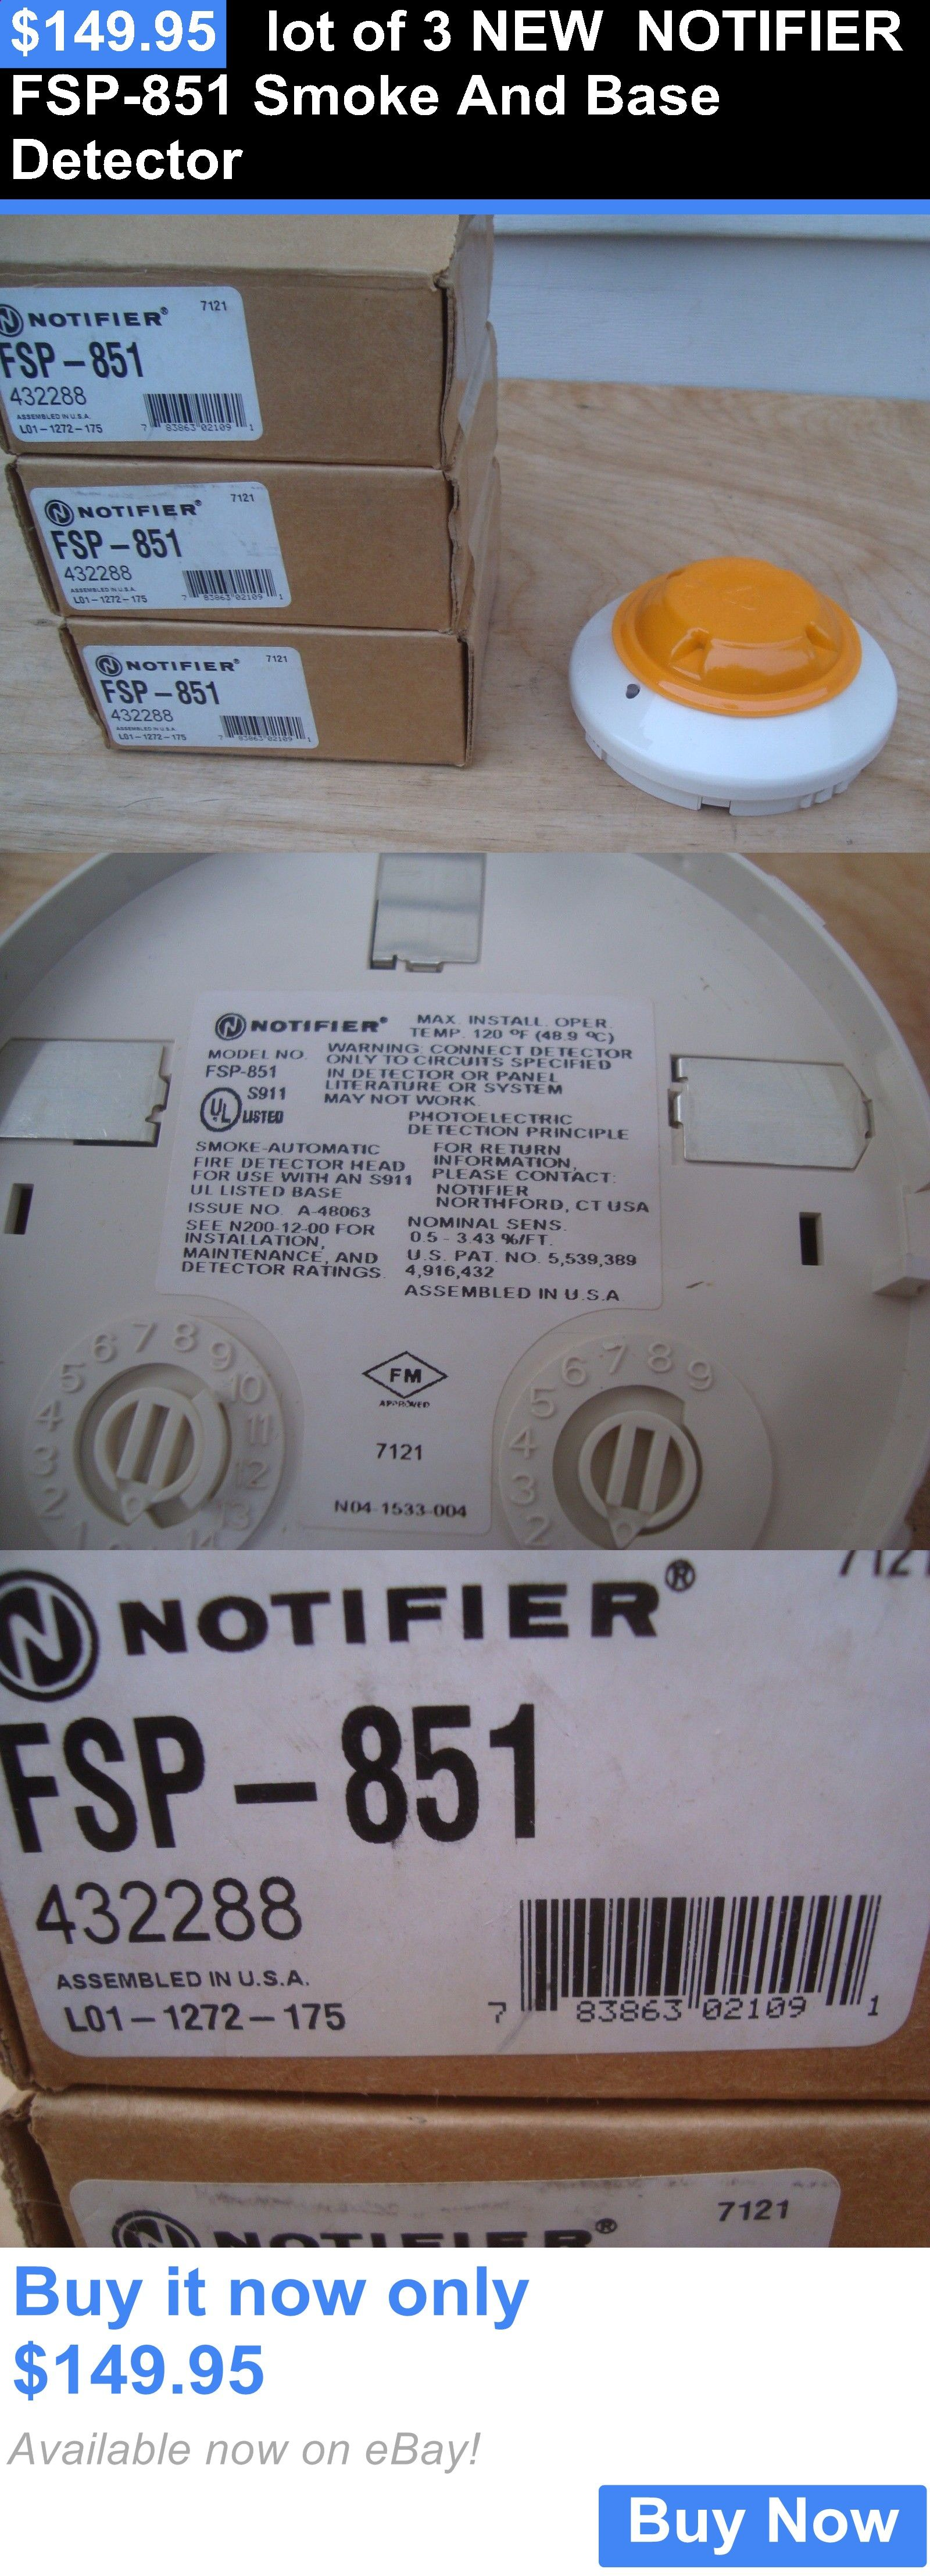 Other Consumer Electronic Lots: Lot Of 3 New Notifier Fsp-851 Smoke And Base Detector BUY IT NOW ONLY: $149.95